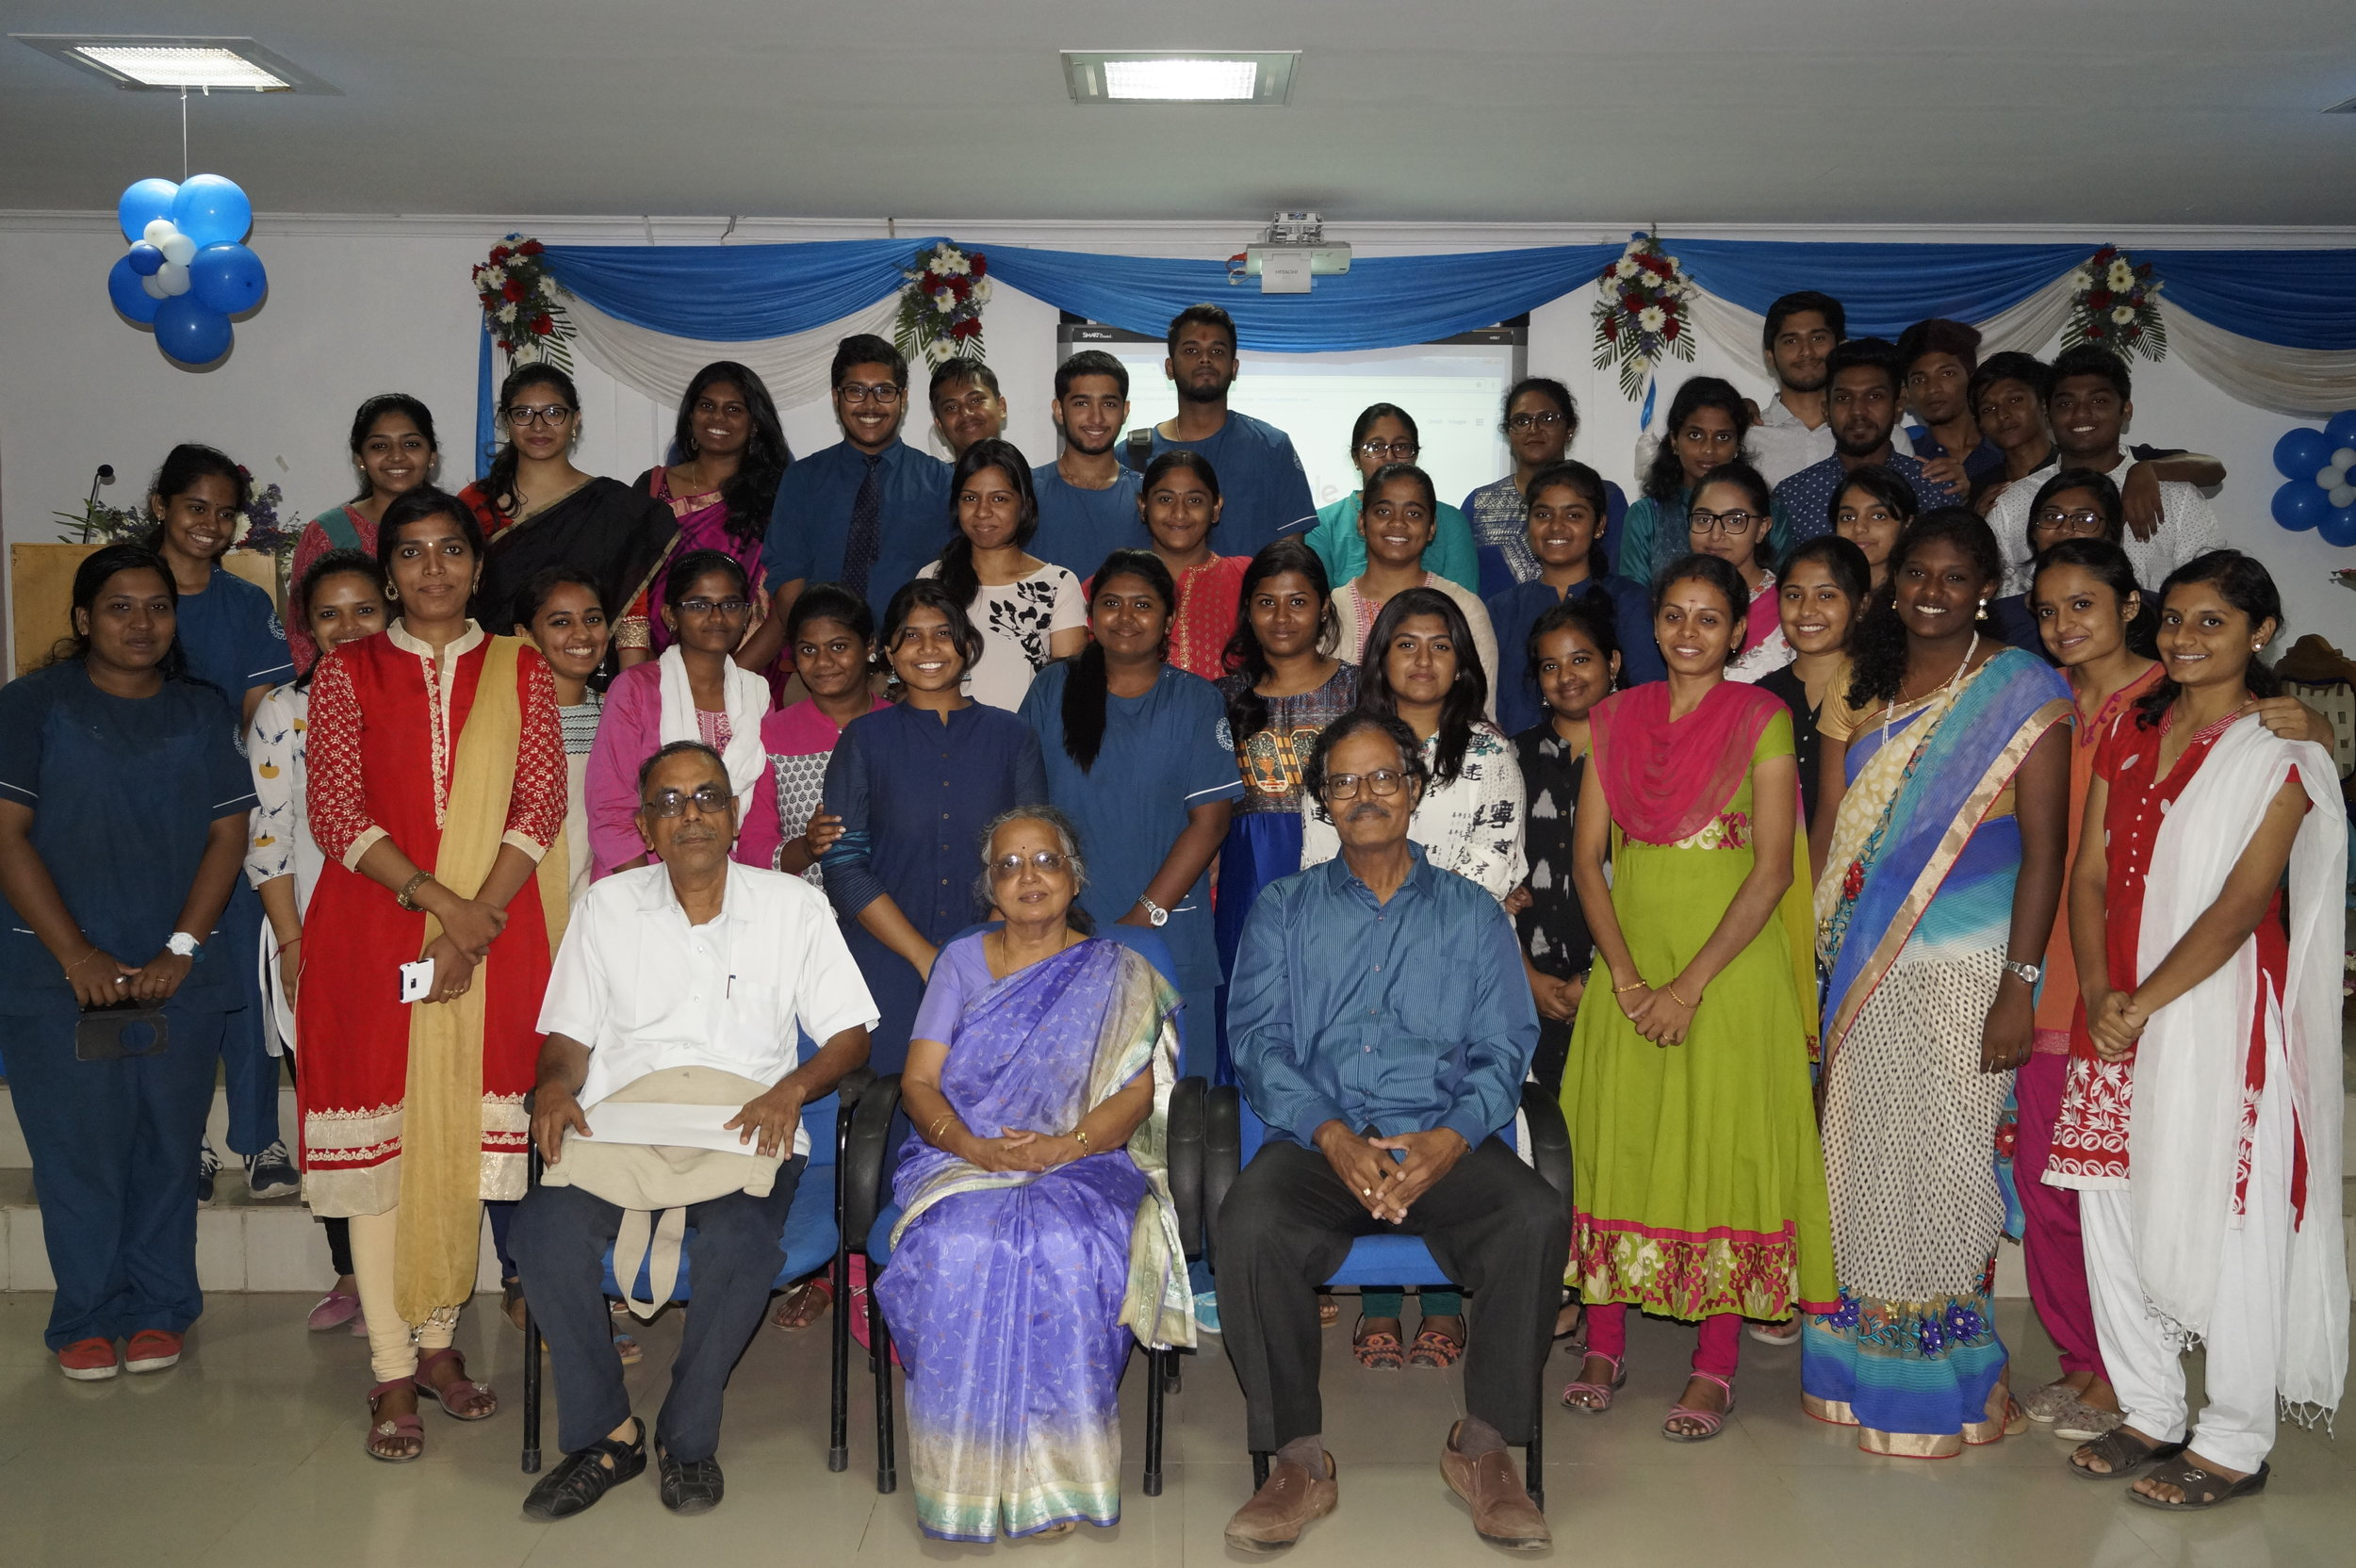 CME On Respiratory Medicine - Department of Physiology conducted CME on respiratory Medicine on April 8th 2017. Talk was given by Prof. Gangadharan & Prof.Sundar from Saveetha Medical college & MMC.